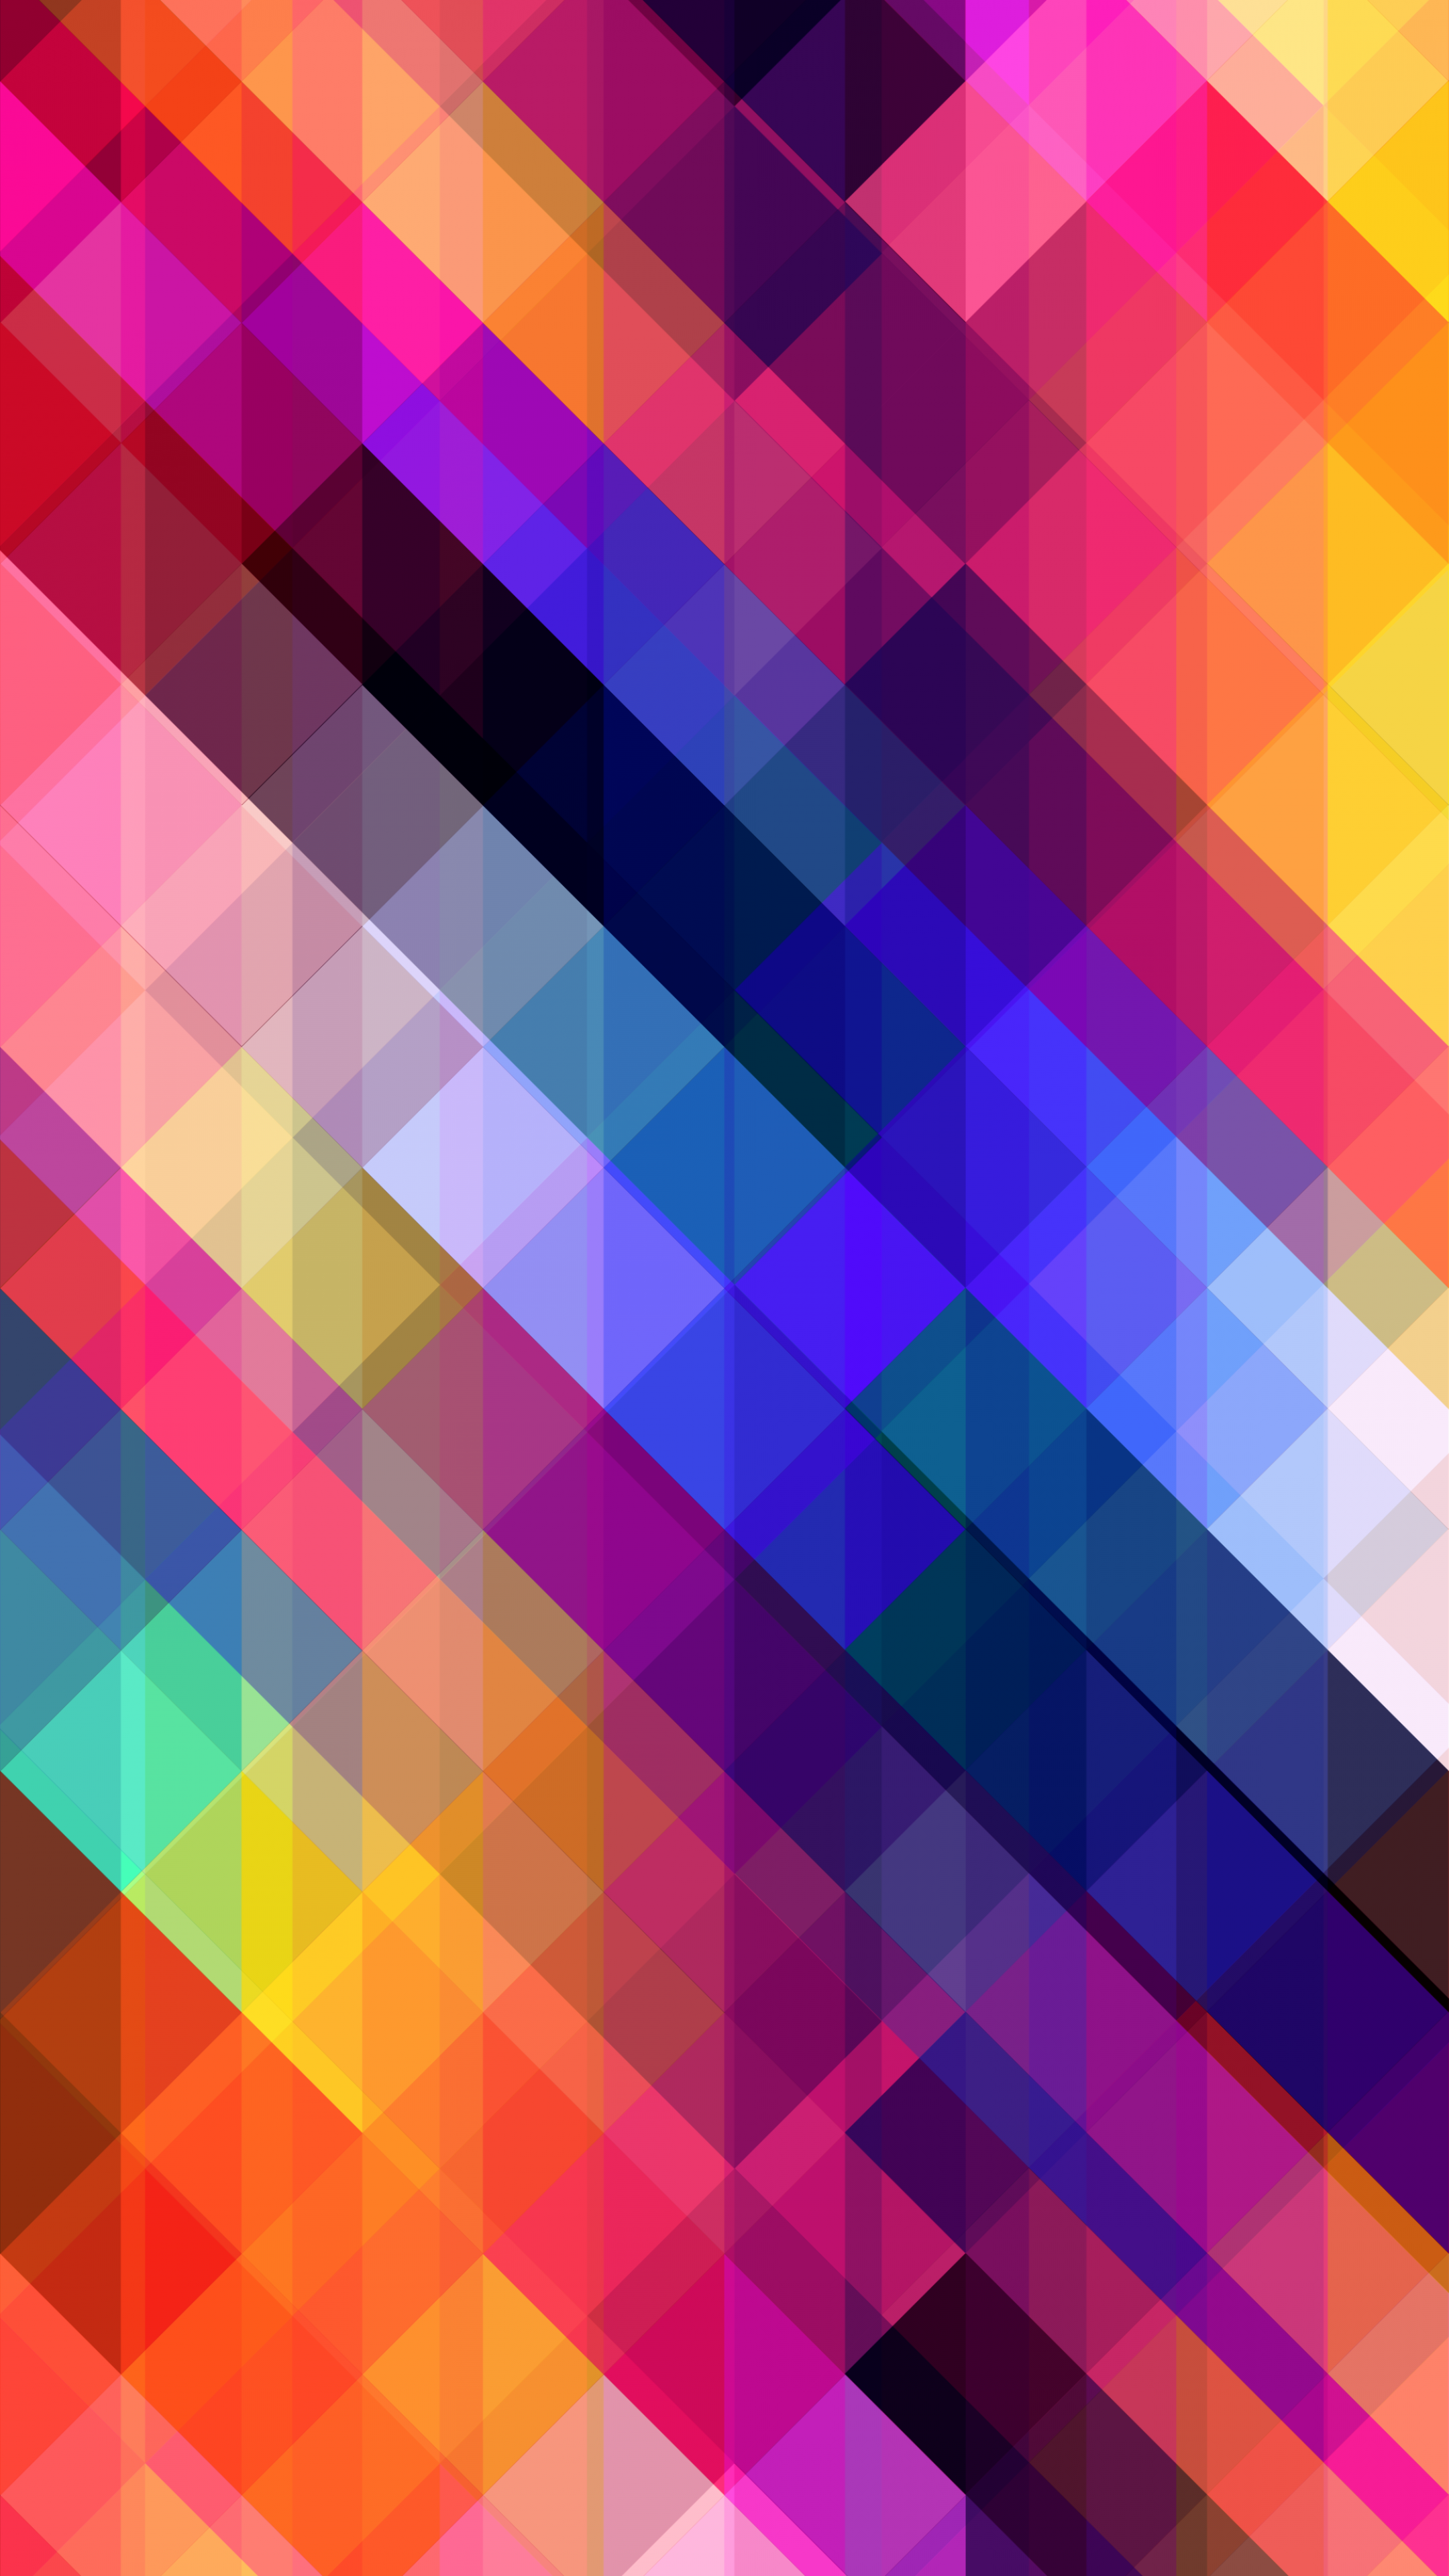 Stripes Crossed Multicolored Abstract 2160x3840 Wallpaper Colorful Wallpaper Android Wallpaper Iphone Wallpaper